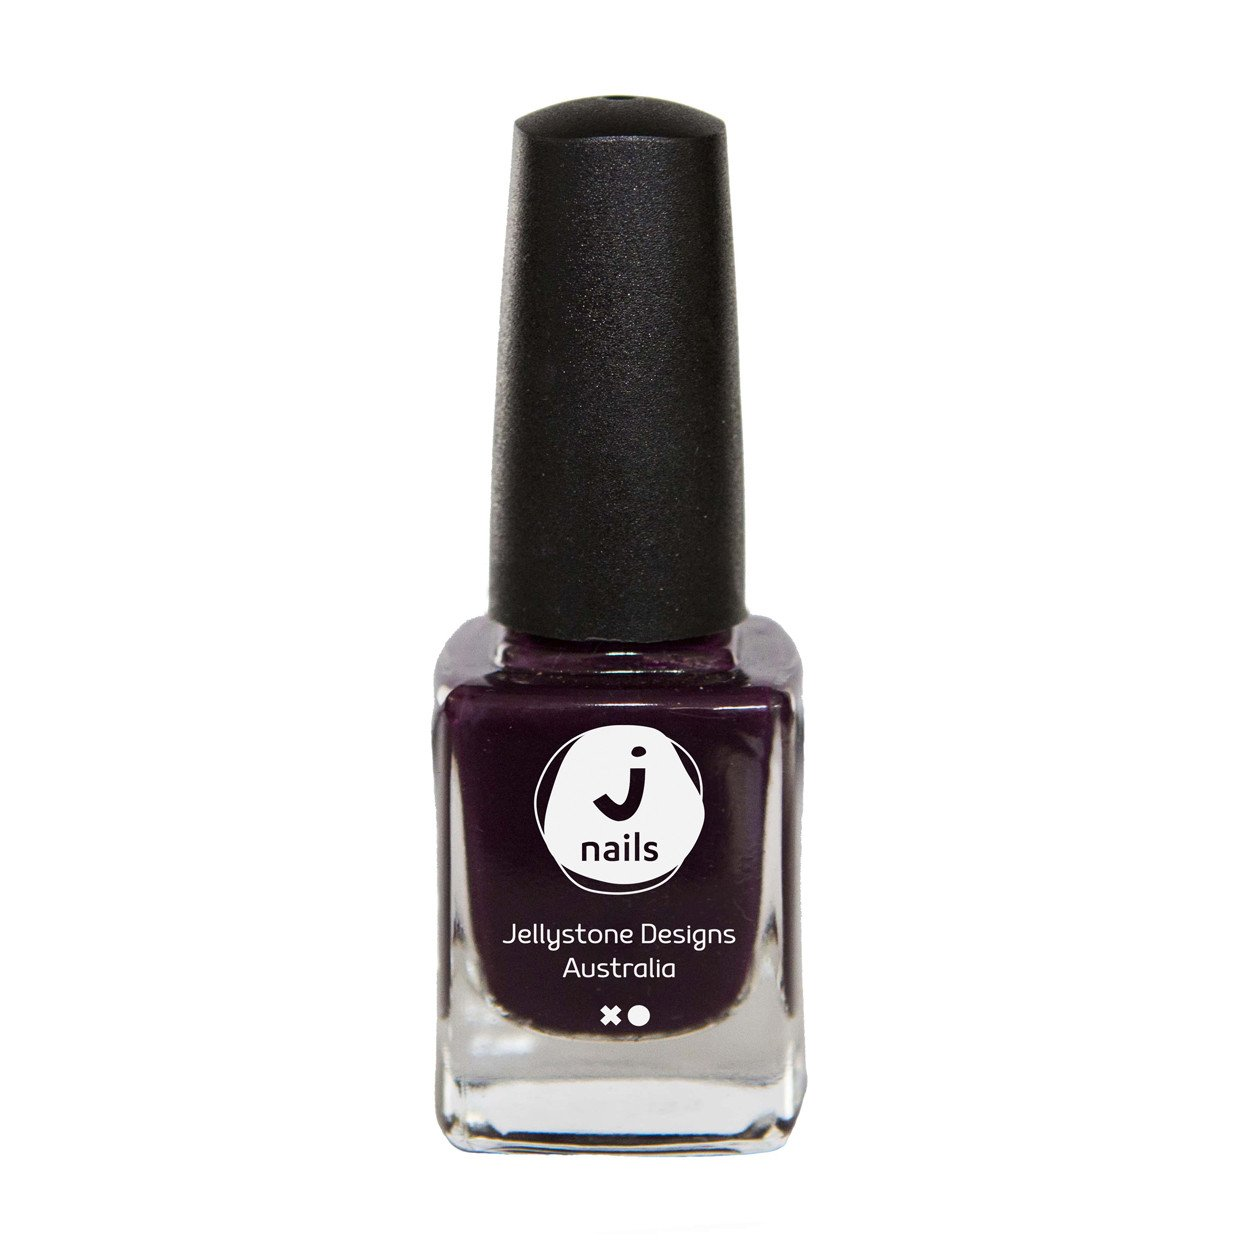 Jellystone 7 Free Nail Polish - Little Earth Nest